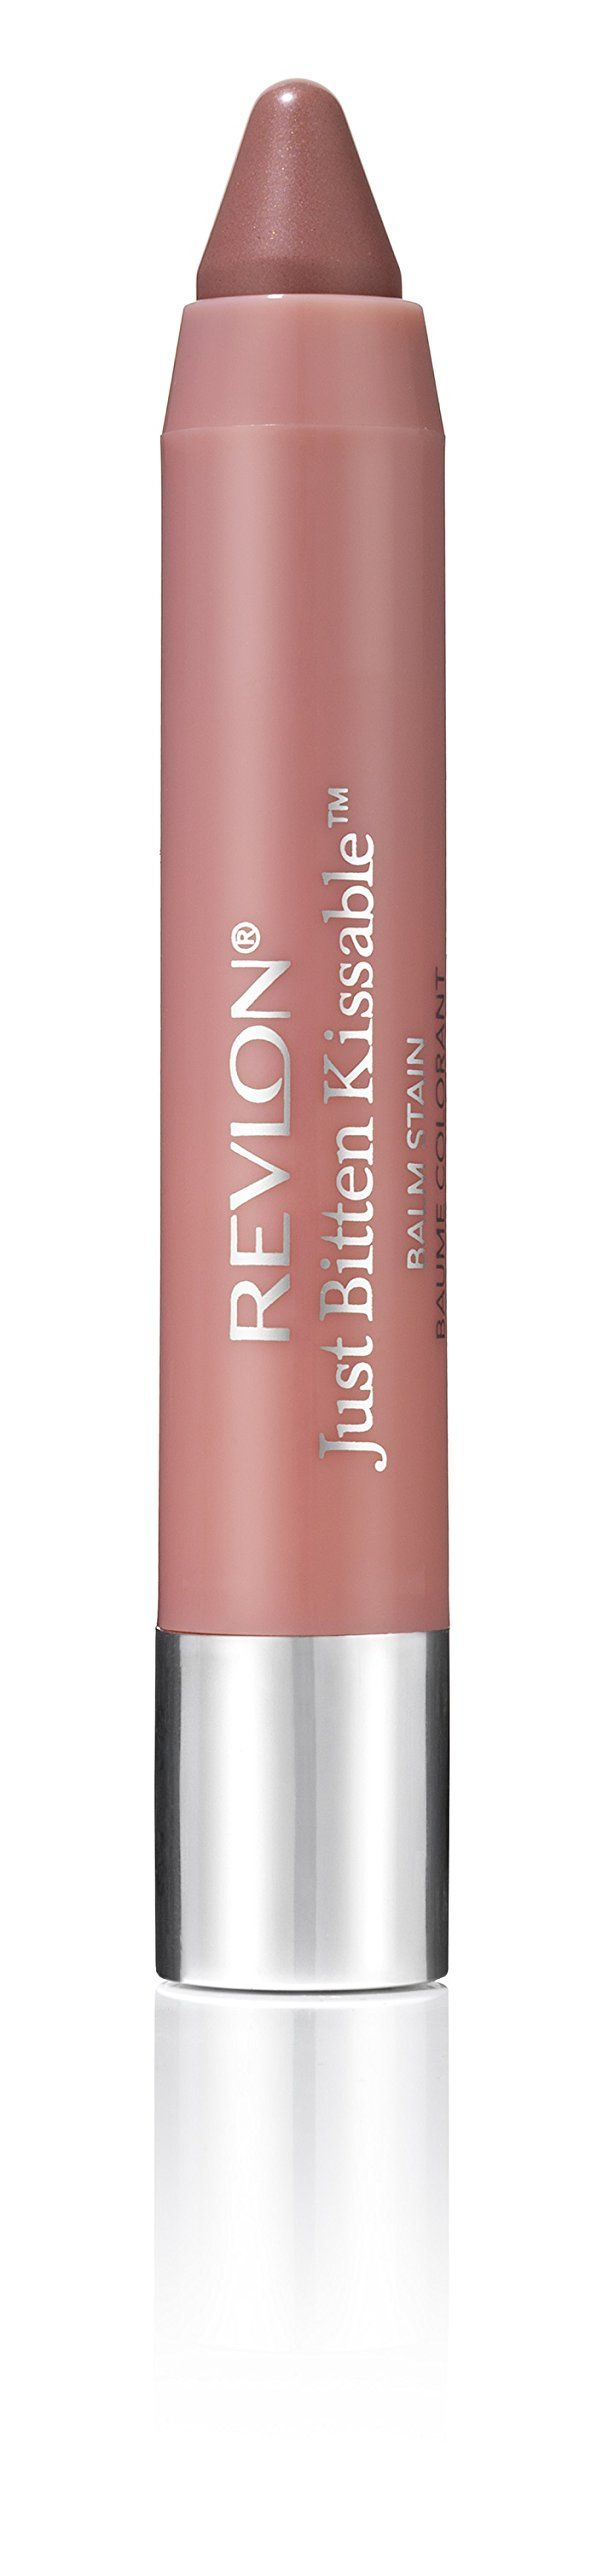 Revlon ColorBurst Balm Stain, Honey - This stays on and smells fab! Like vanilla and mint.